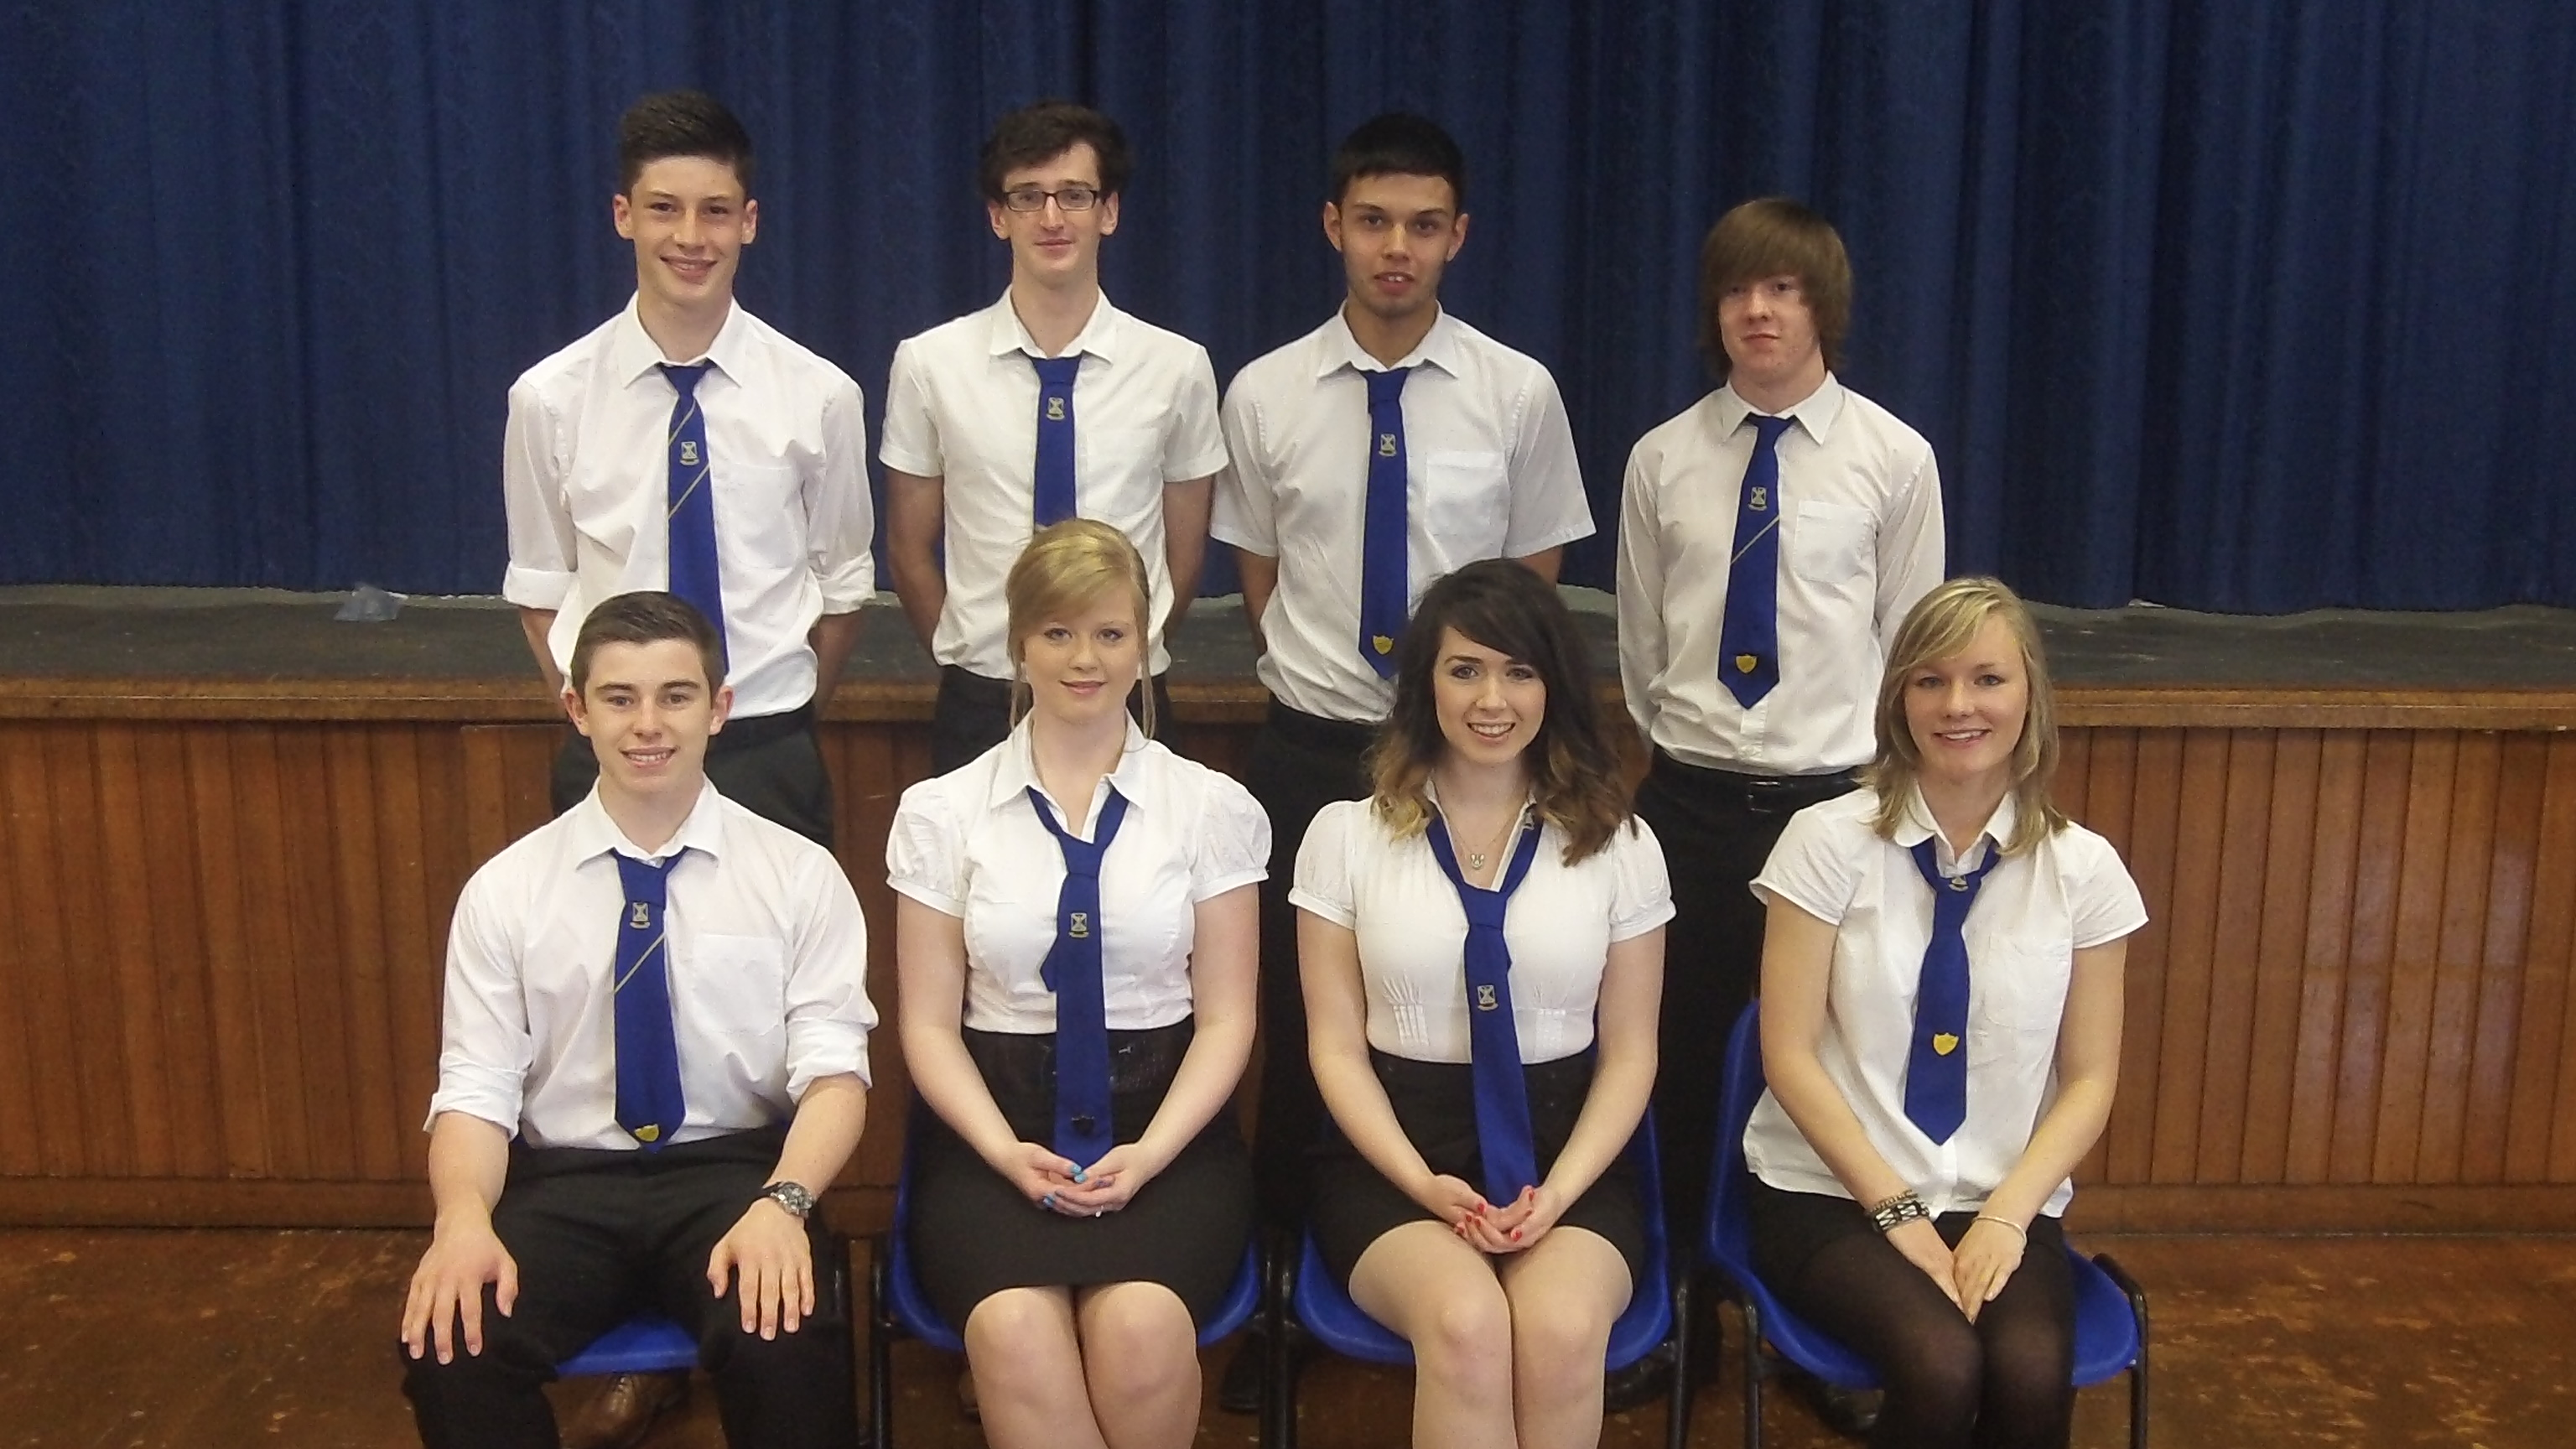 Mearns Academy Prefects 2012